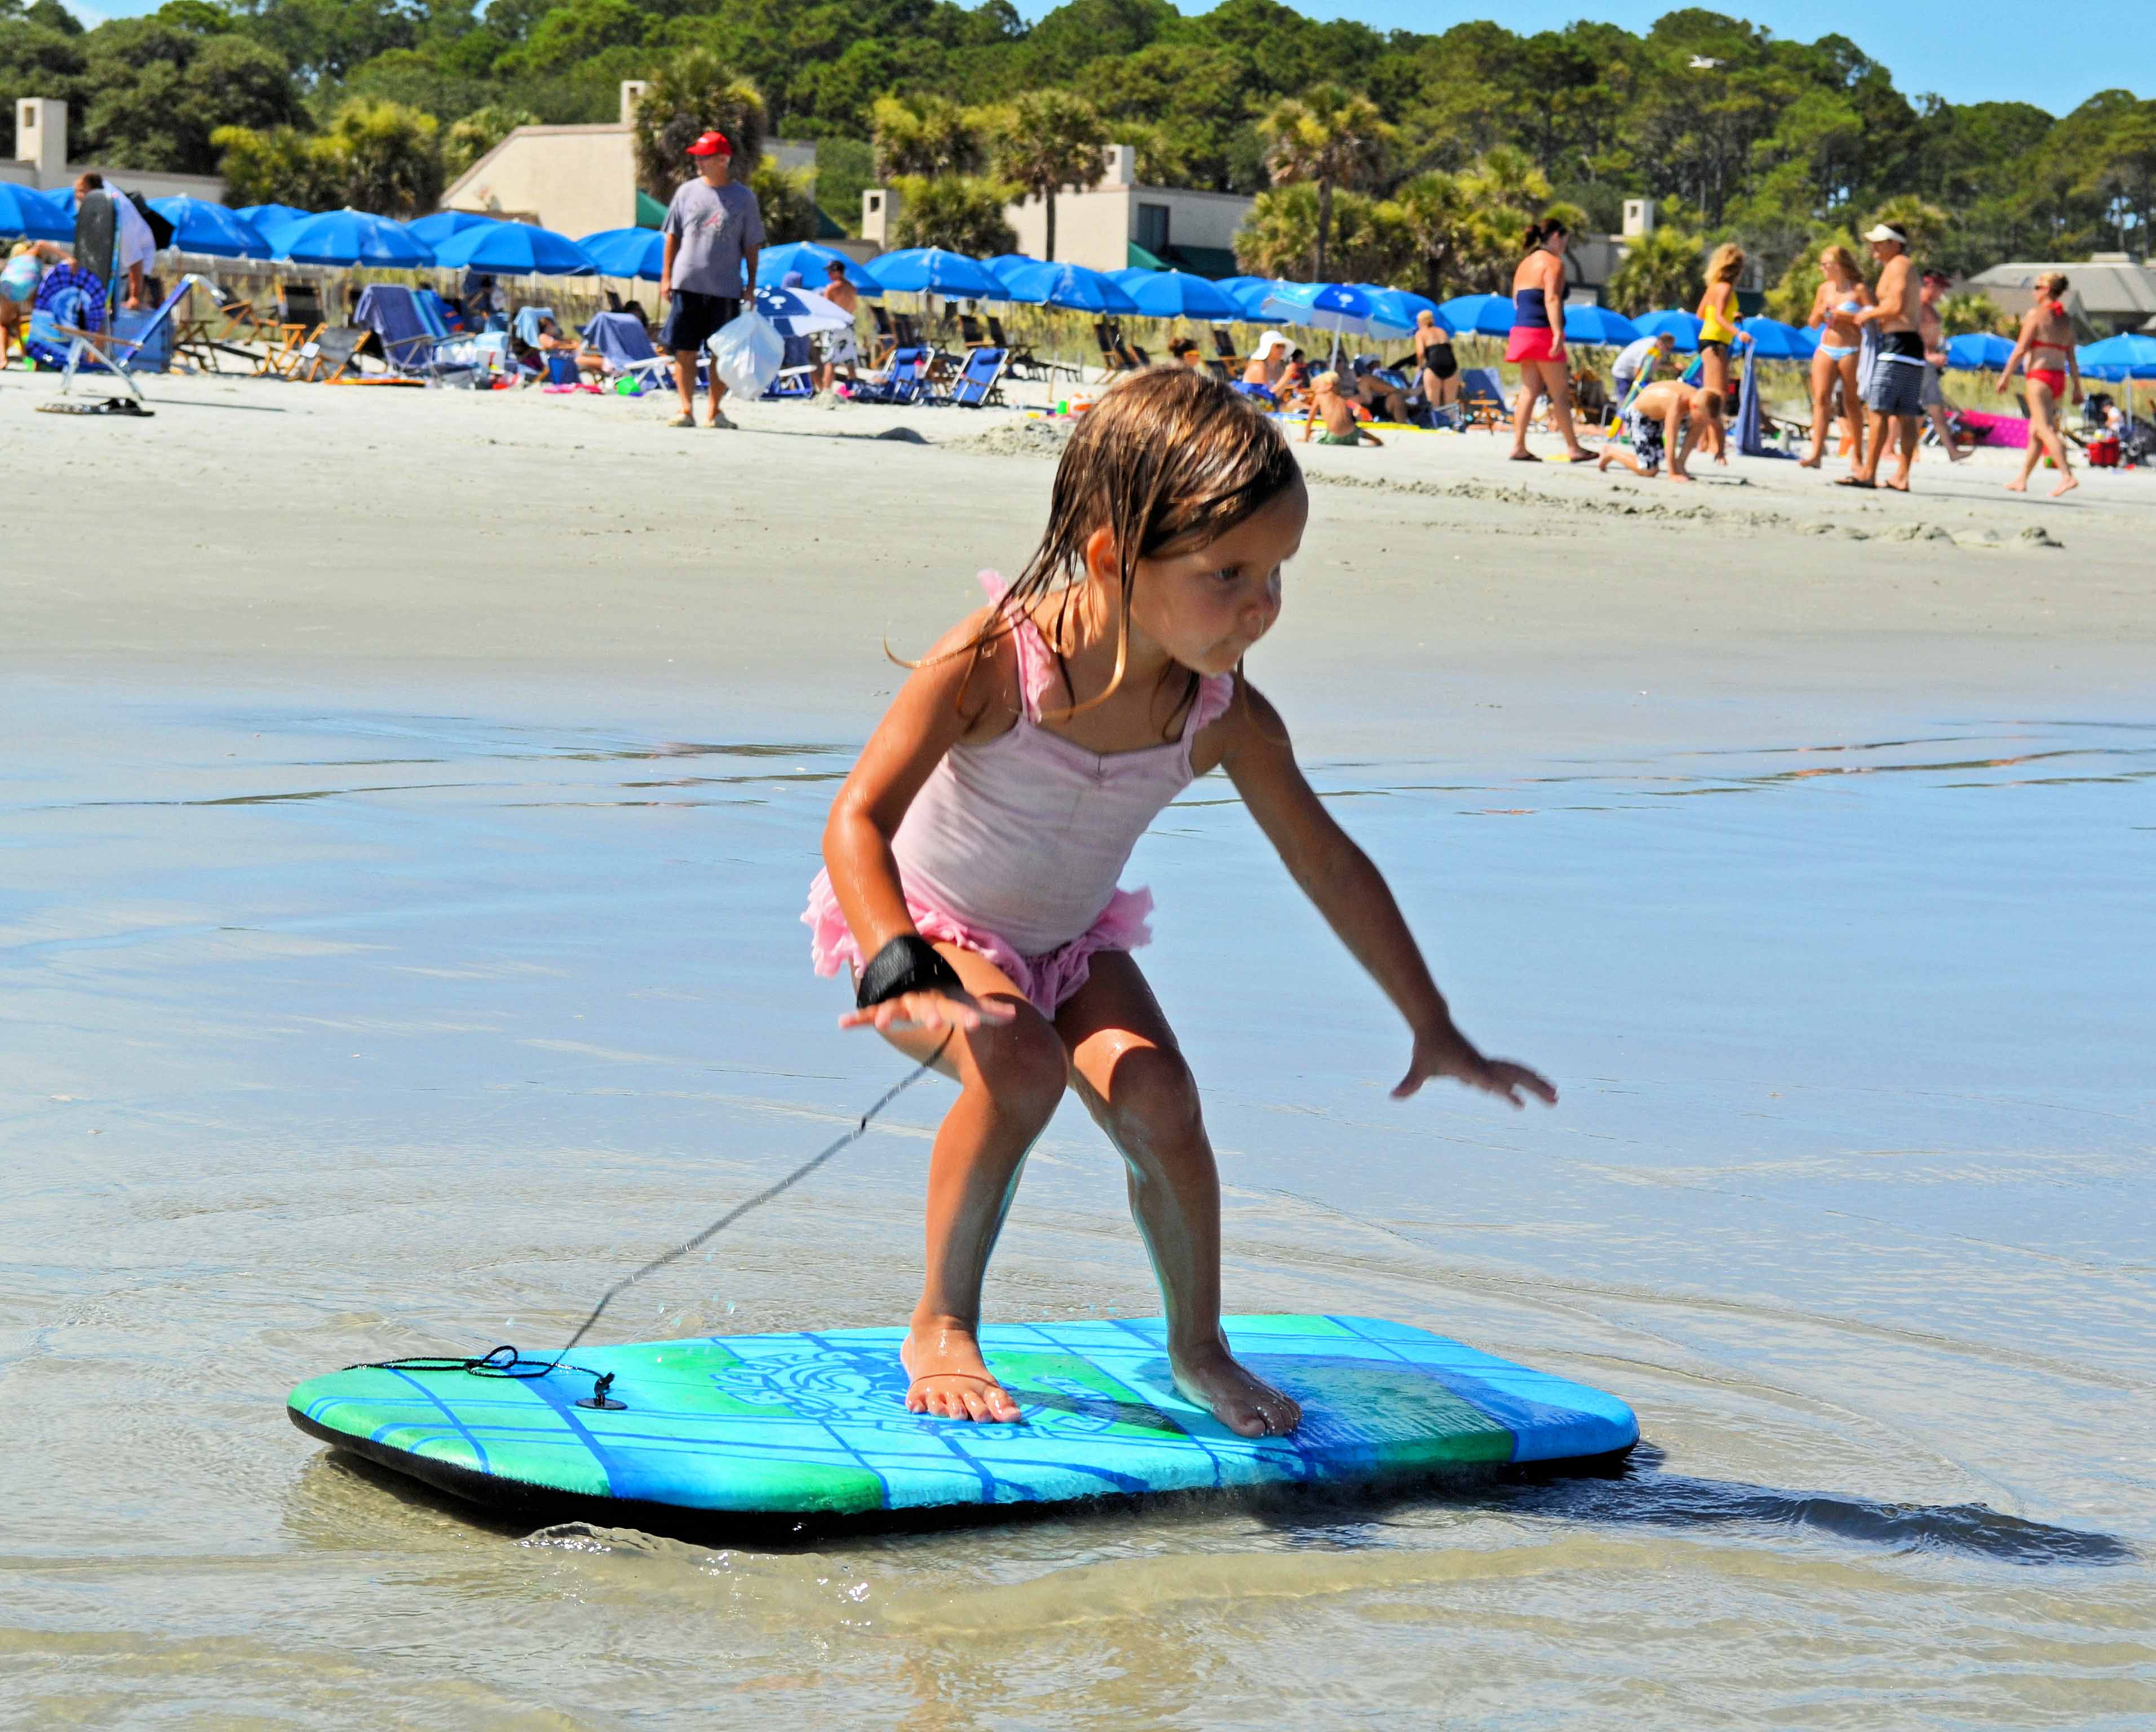 Boogie Boarding in Destin Florida. Toasted Coconut Macadamia Pancakes with Coconut Syrup by Modern Honey.